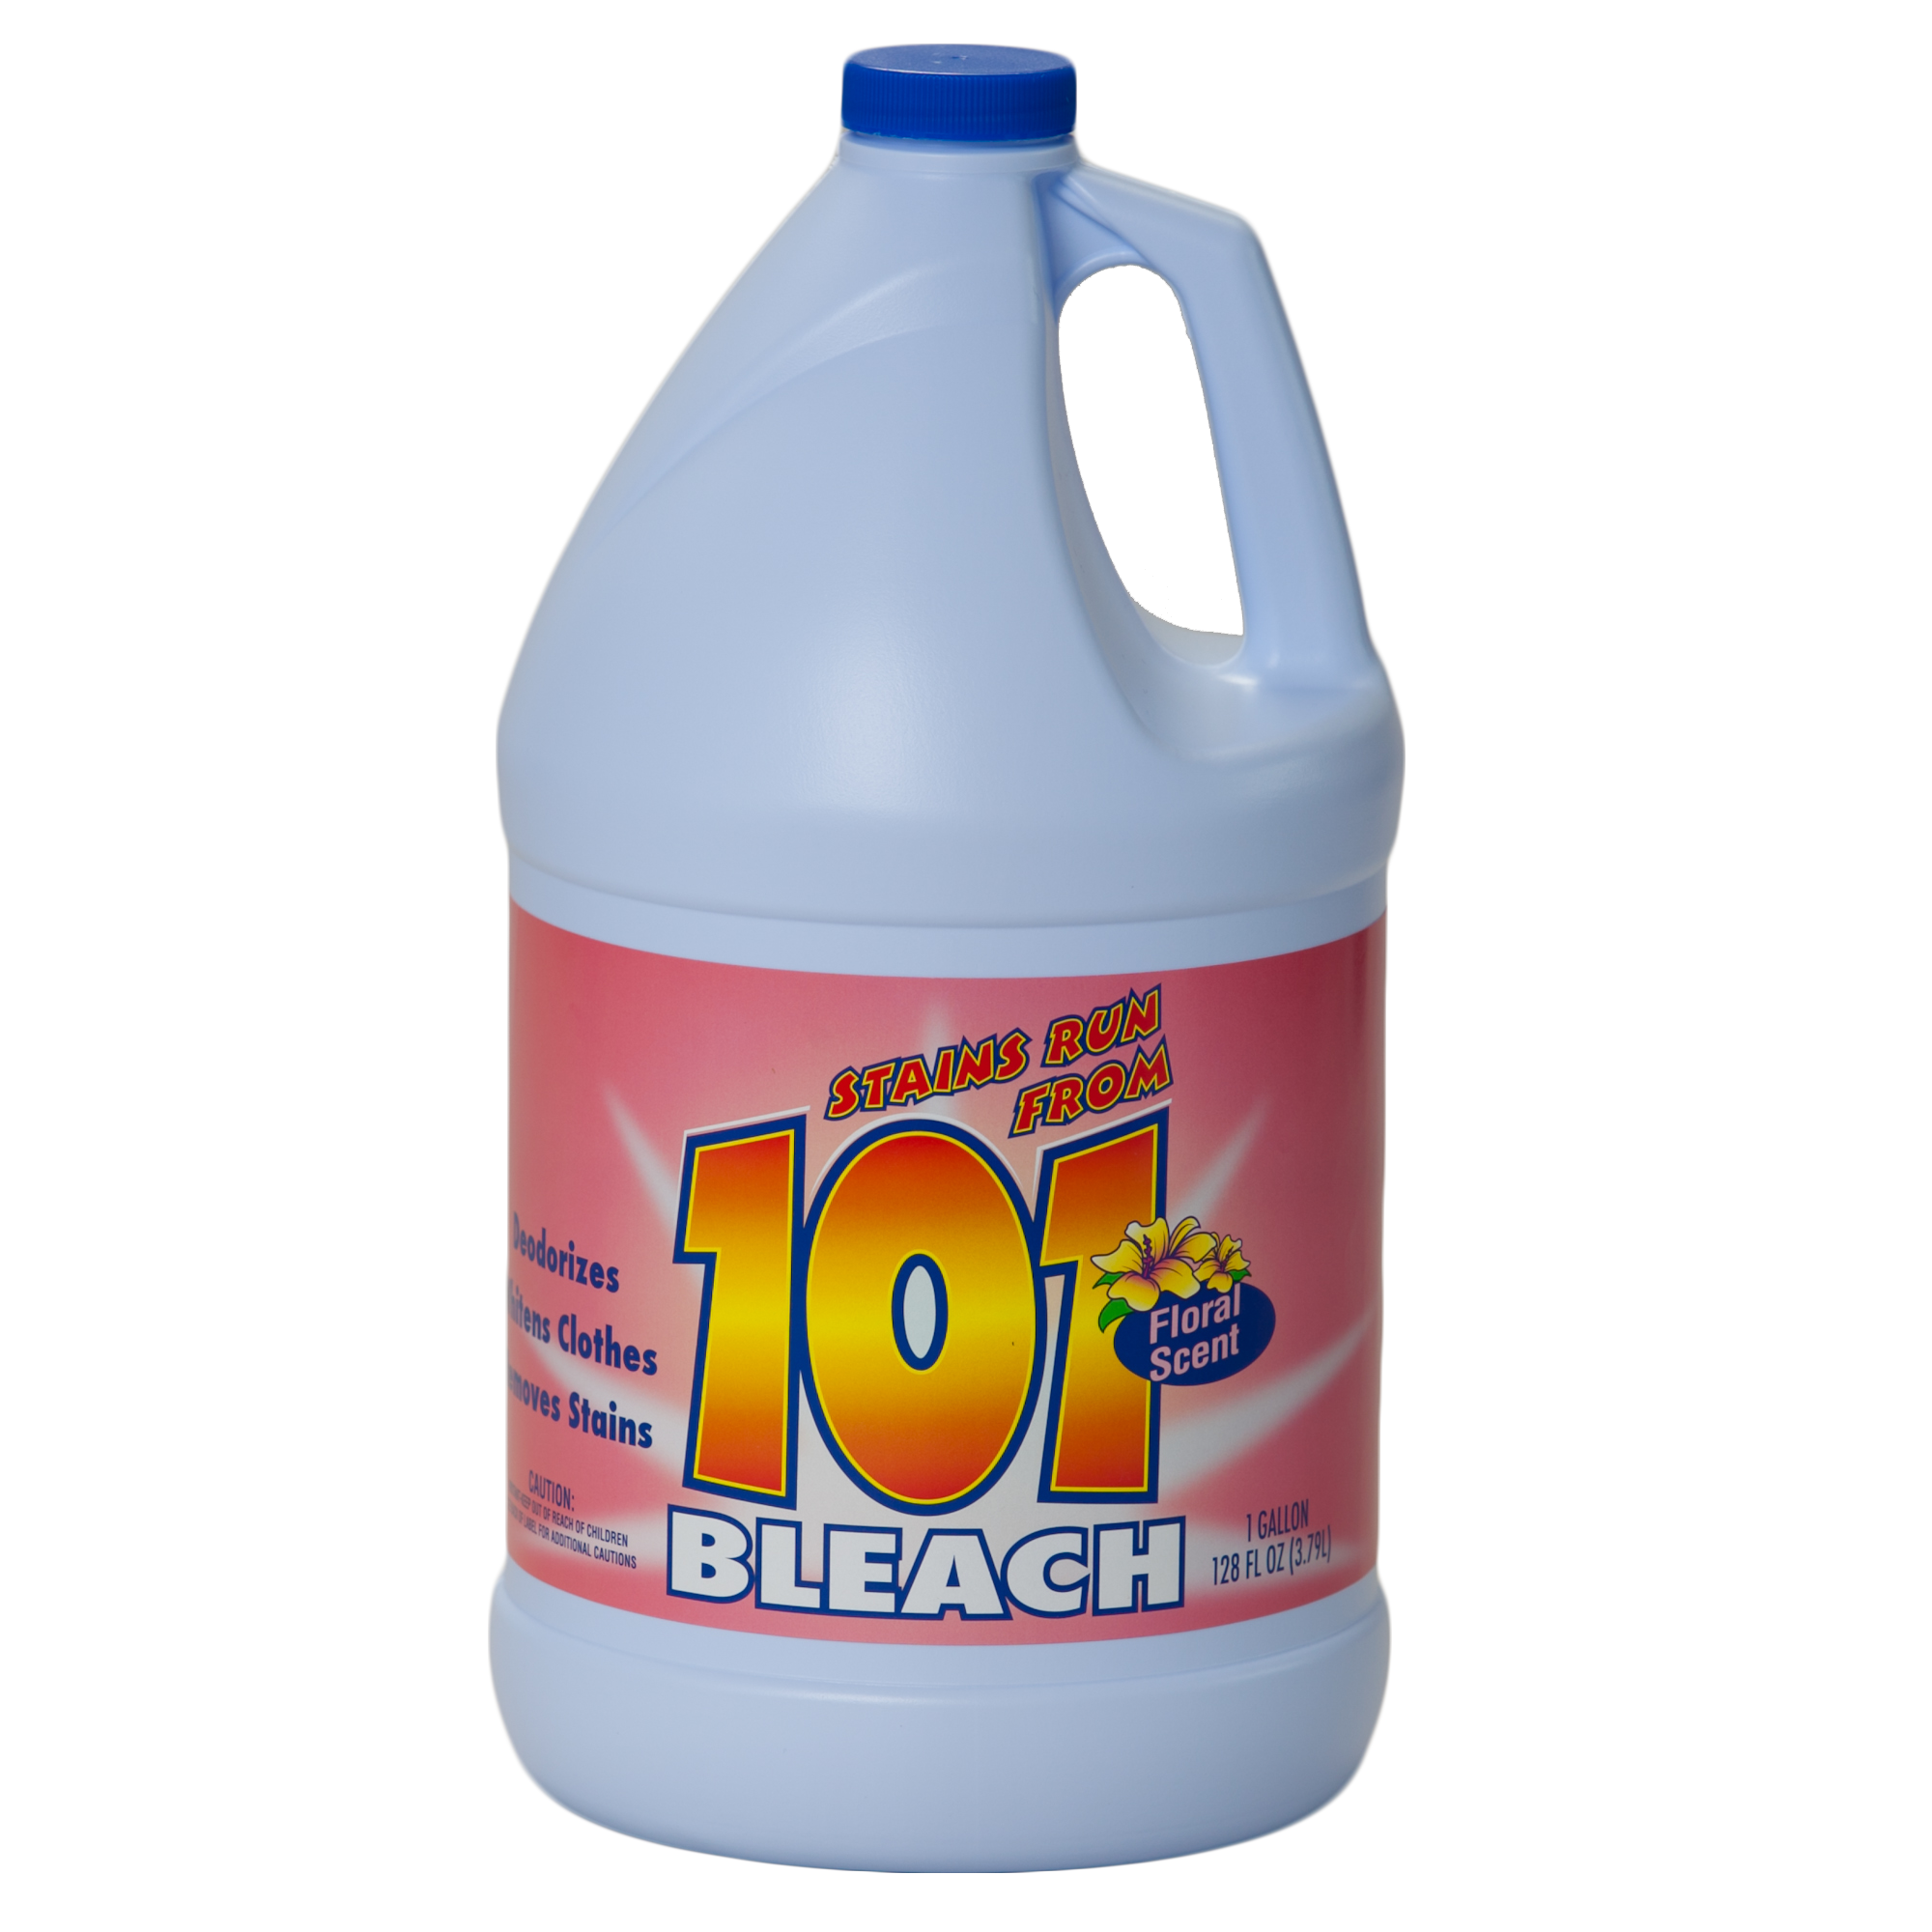 Bleach bottle png. Royalty free stock